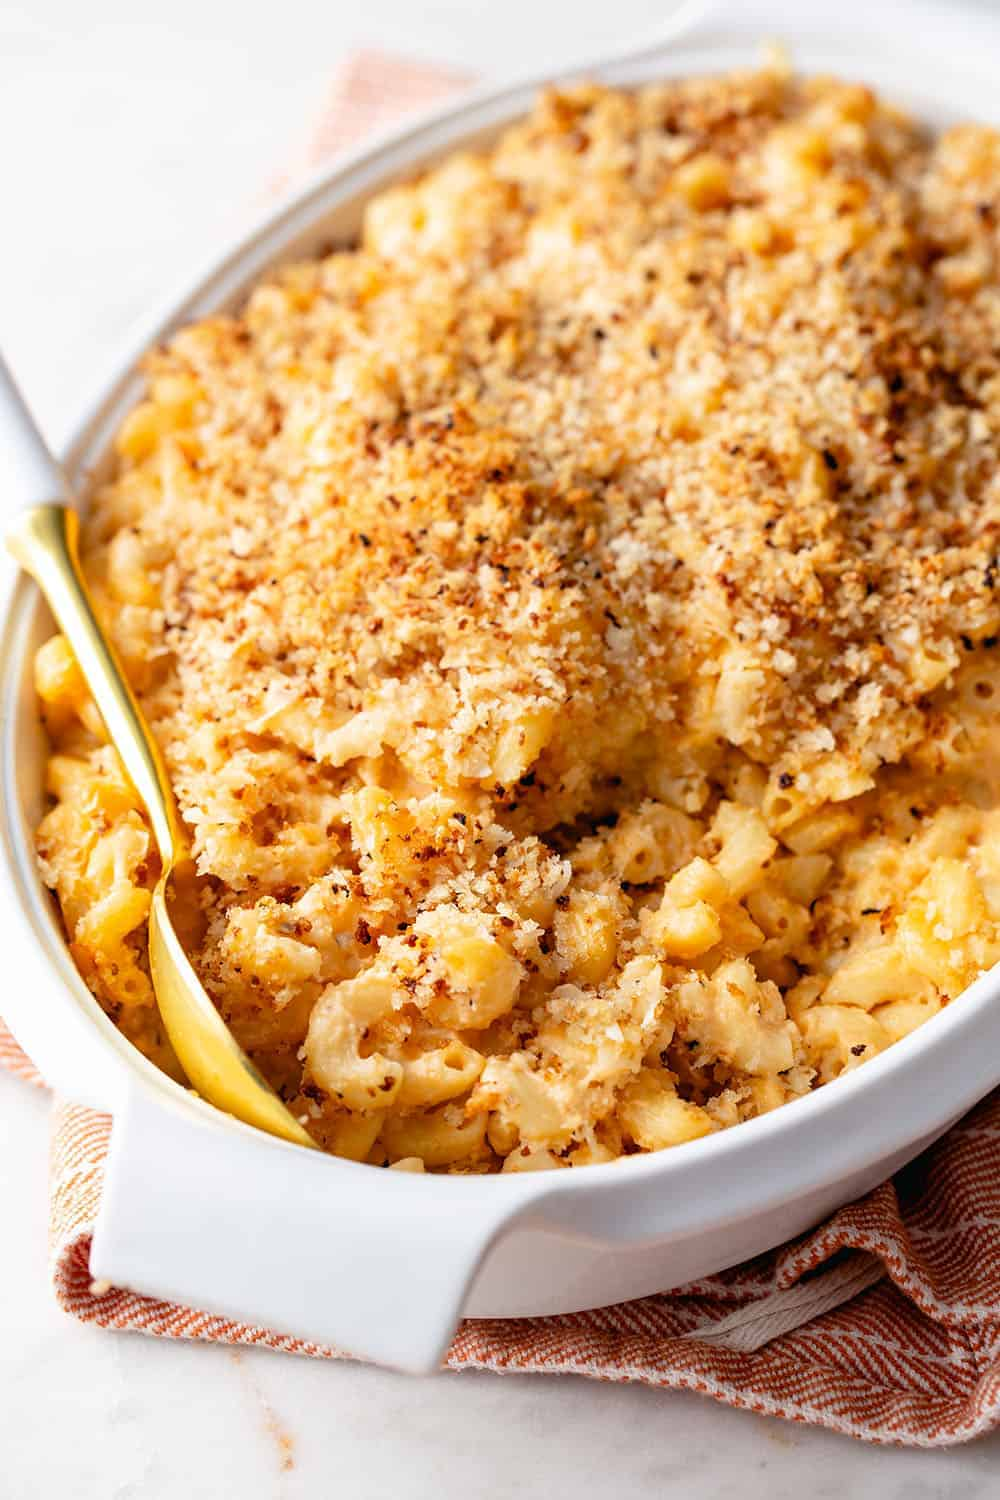 Spoon about to serve baked macaroni and cheese out of a white casserole dish